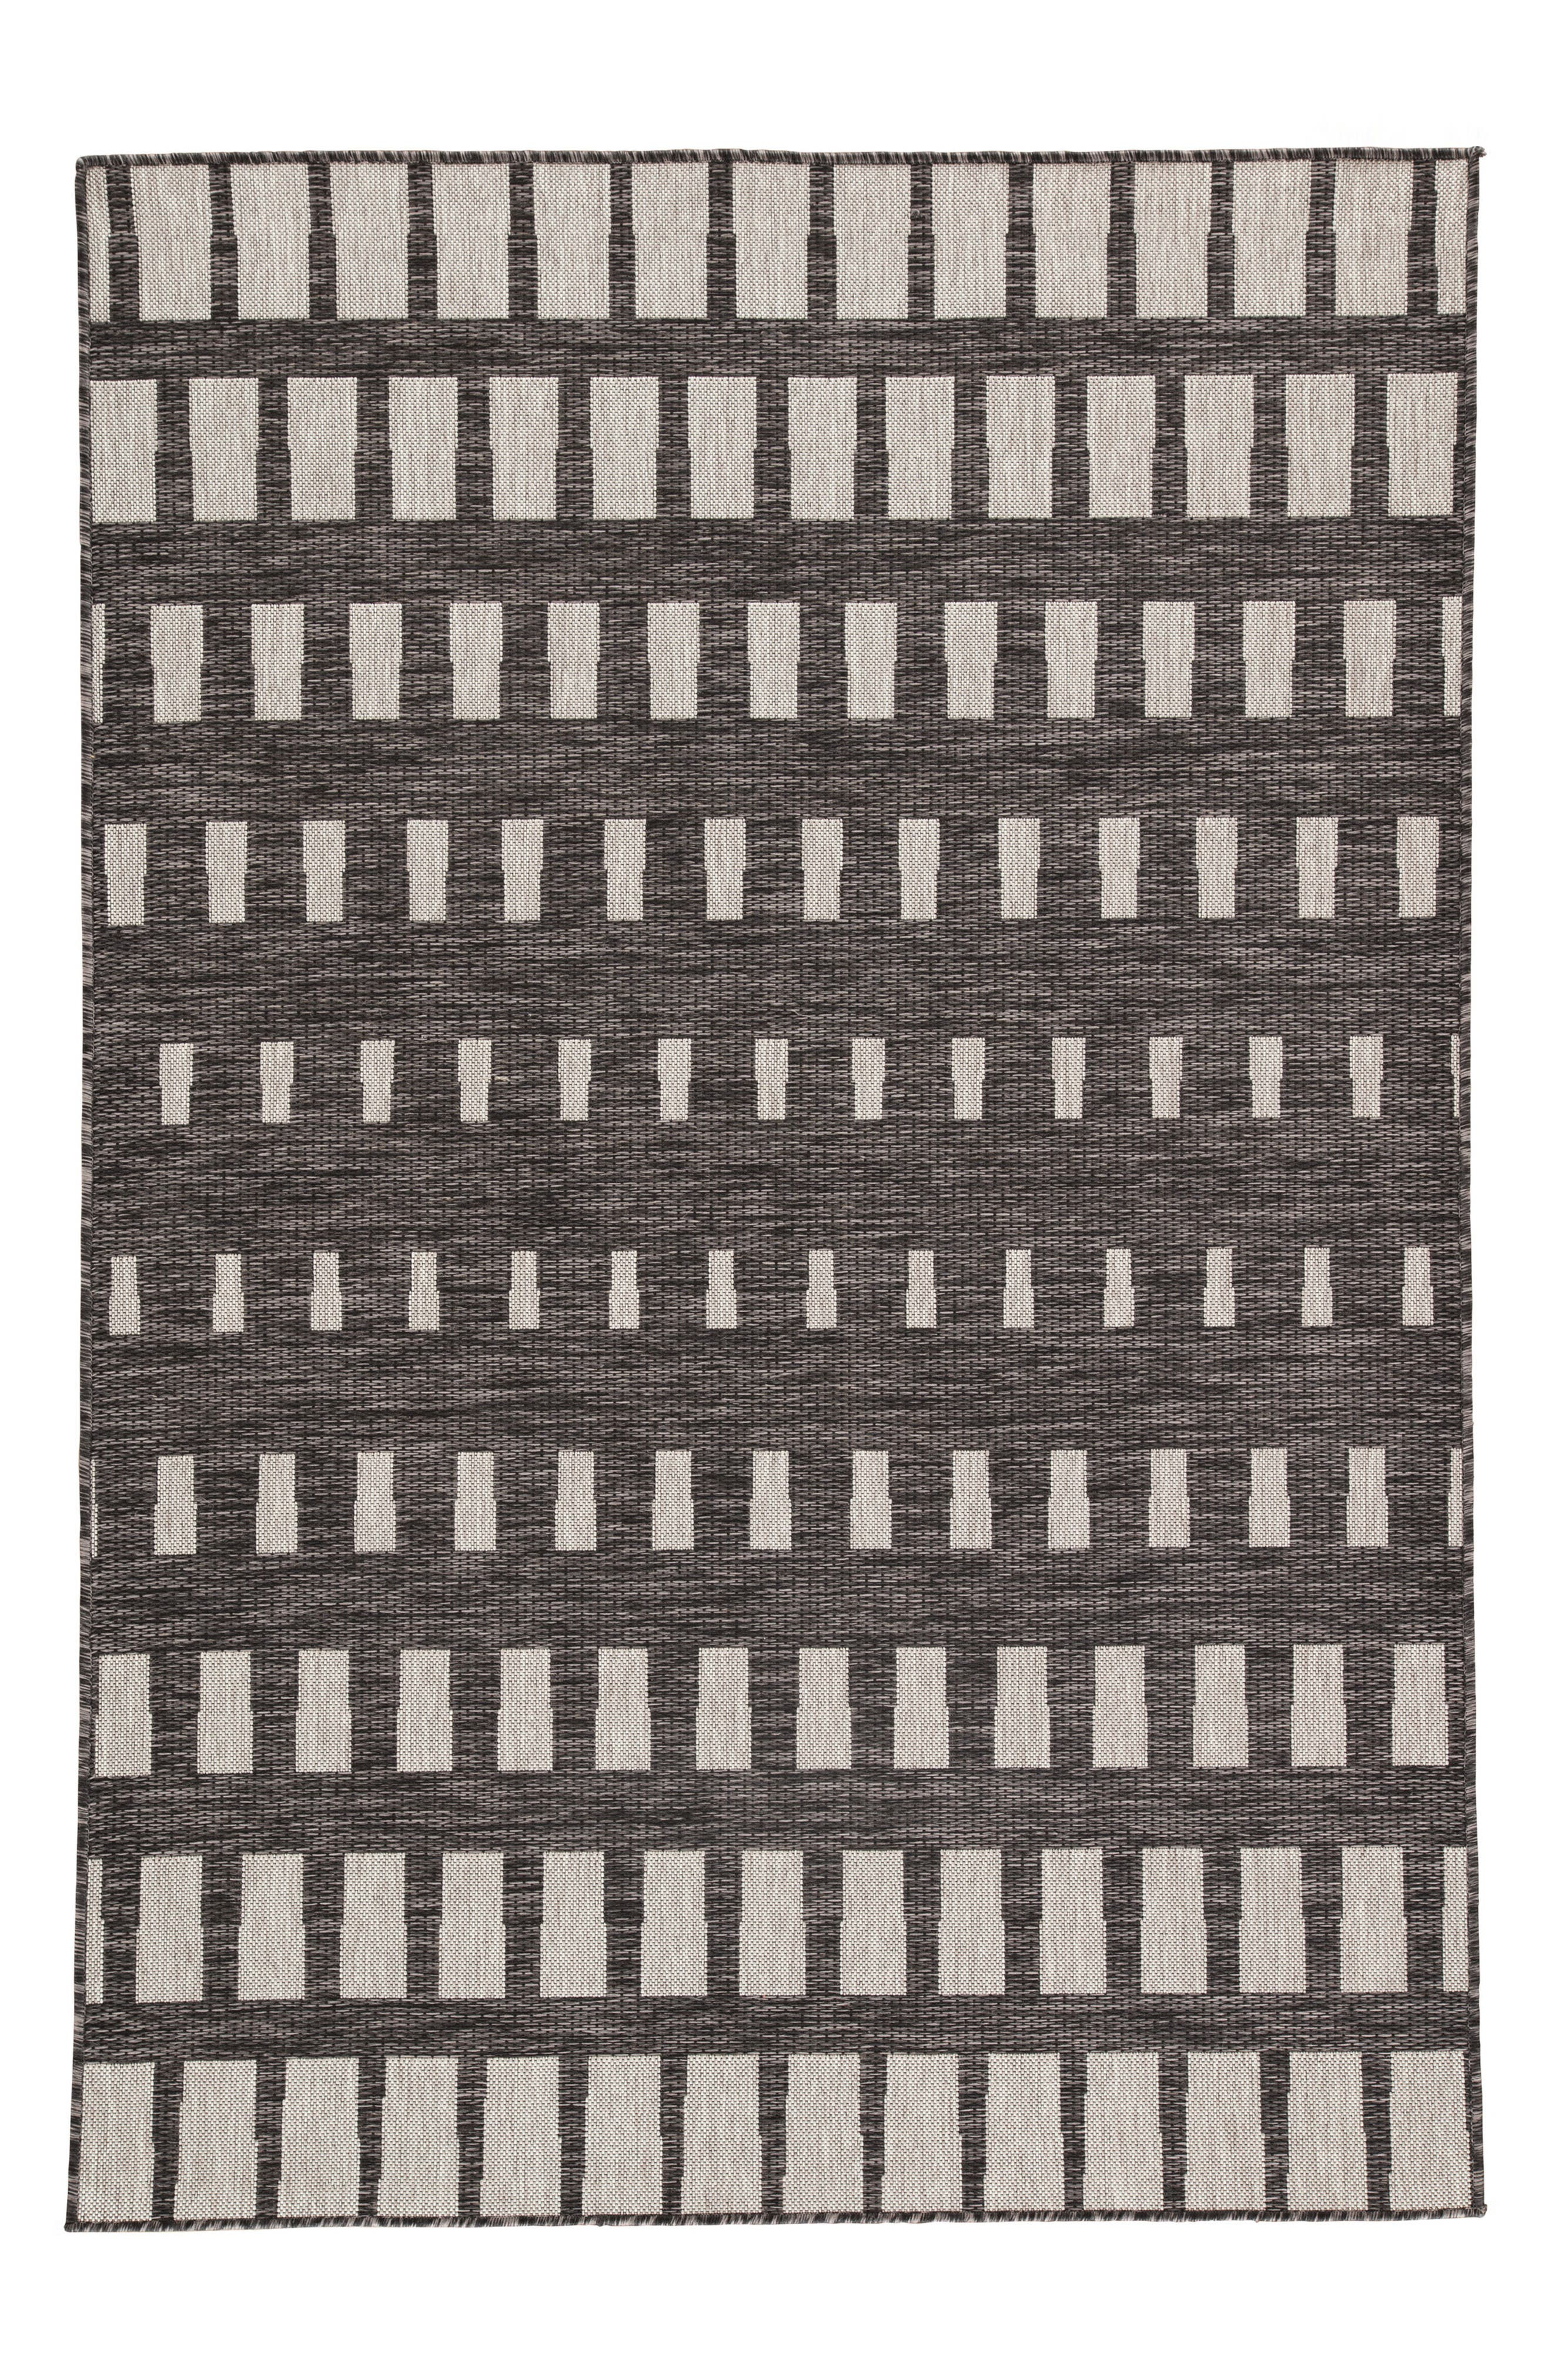 Vaise Indoor/Outdoor Rug,                         Main,                         color, PEWTER